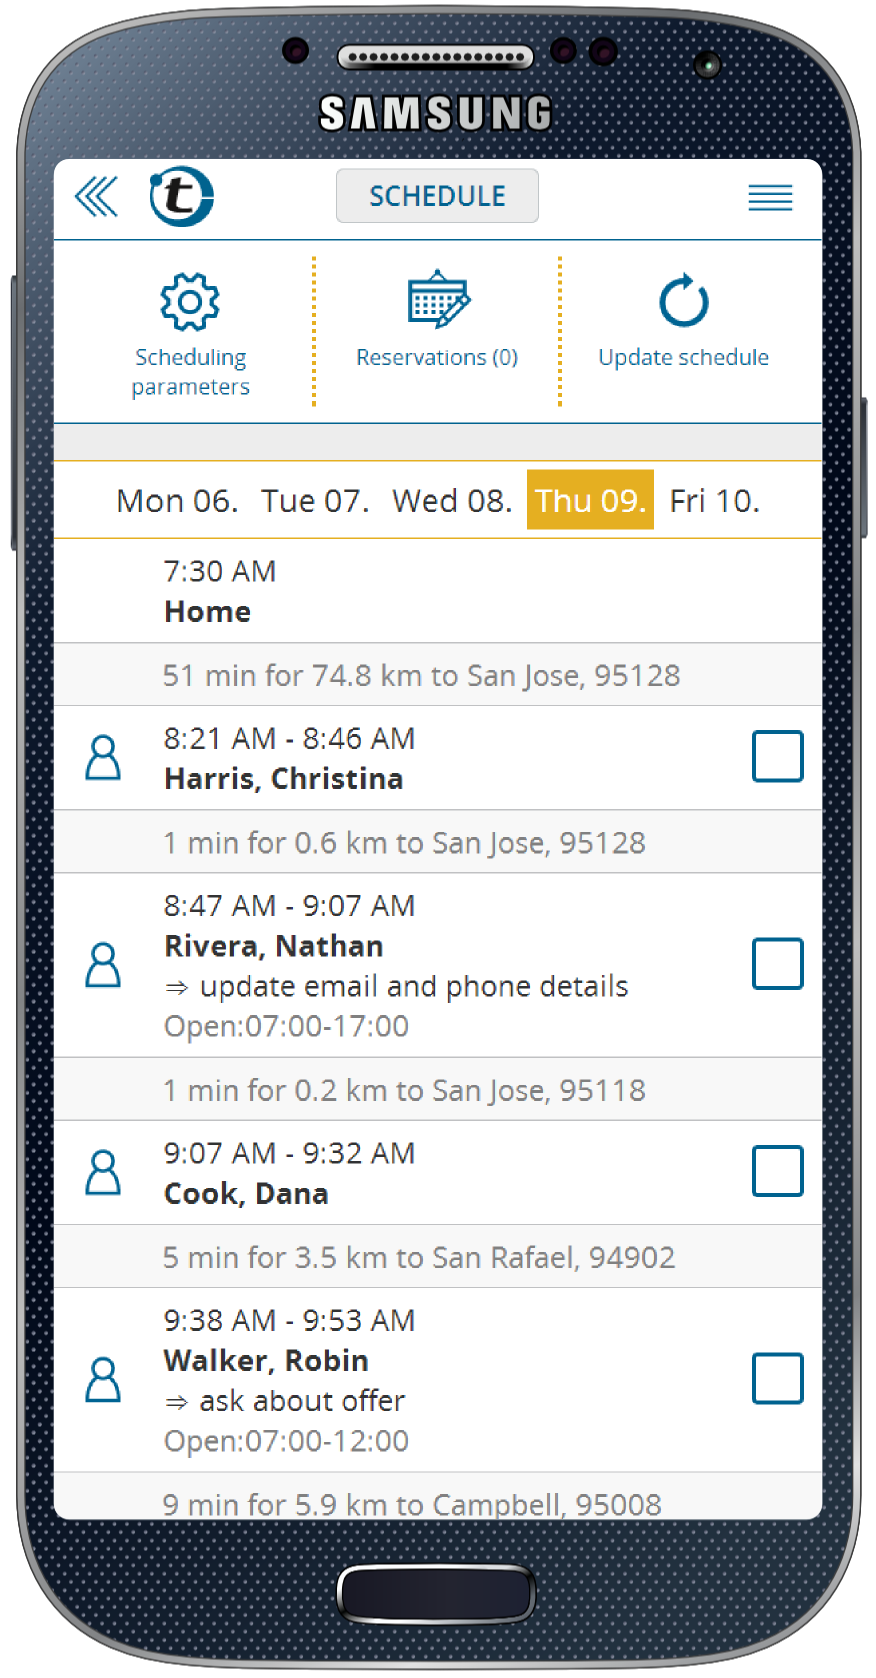 Route planner schedule on a smartphone (Samsung)